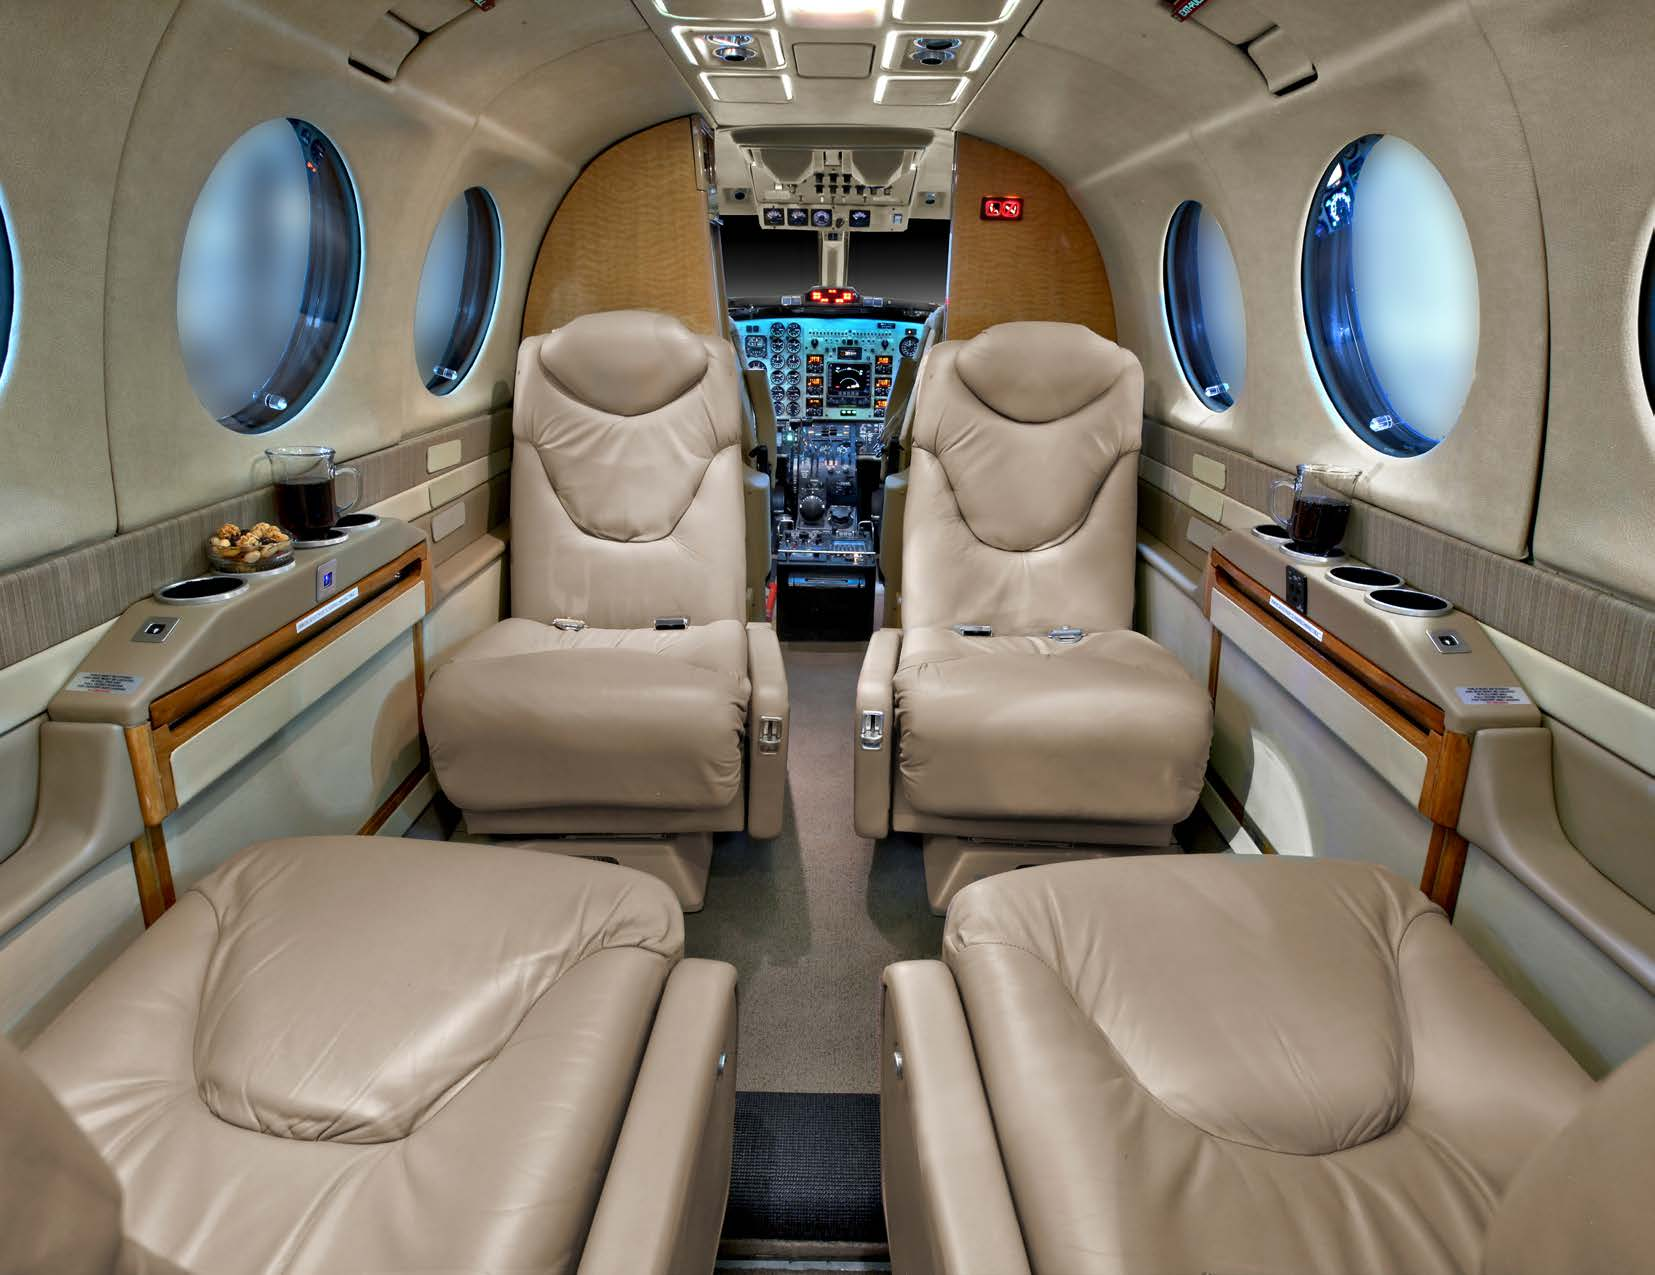 King Air 350 interior